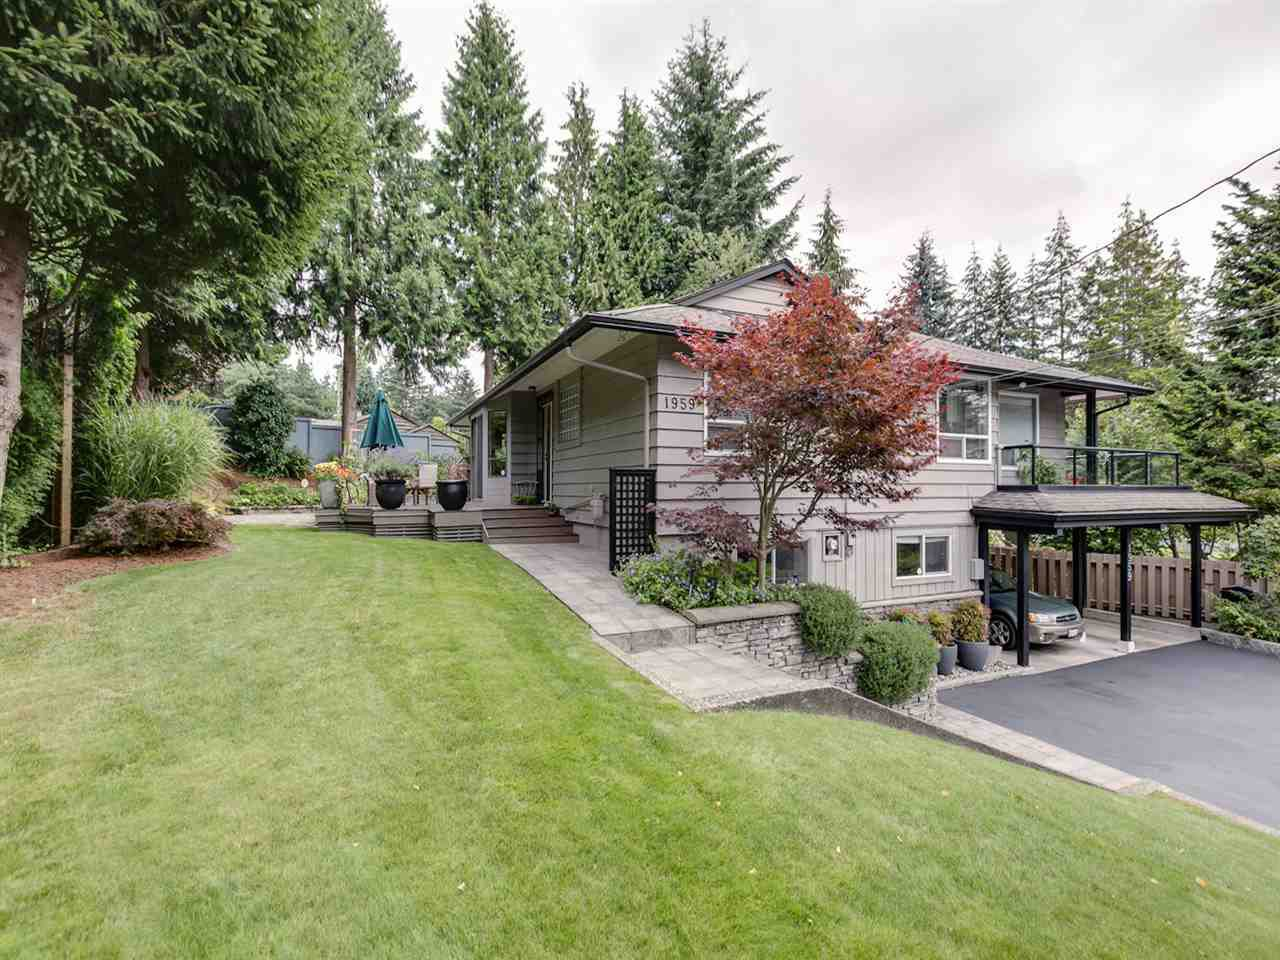 Photo 2: Photos: 1959 ALDERLYNN Drive in North Vancouver: Westlynn House for sale : MLS®# R2094199